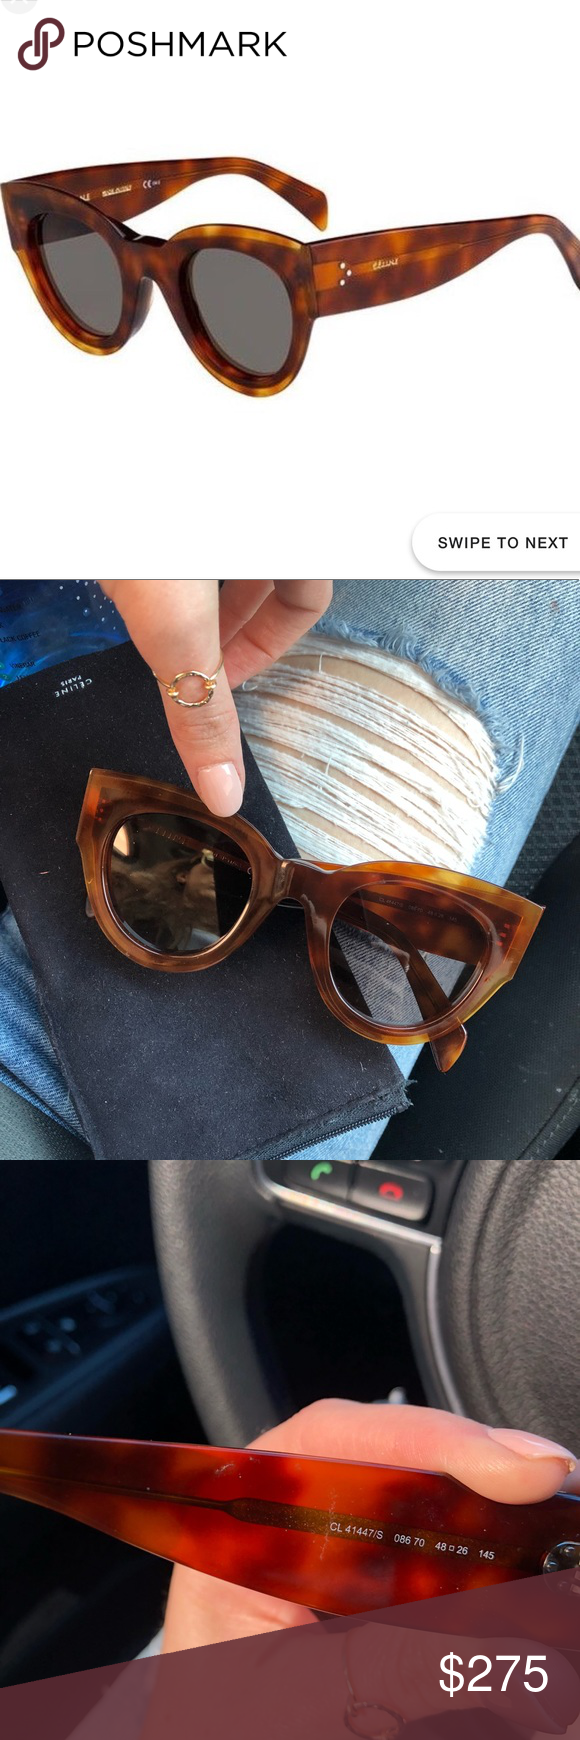 177852c27d Celine Sunglasses Celine 41447 sunglasses - PERFECT CONDITION (worn once).  Bought at Nordstrom